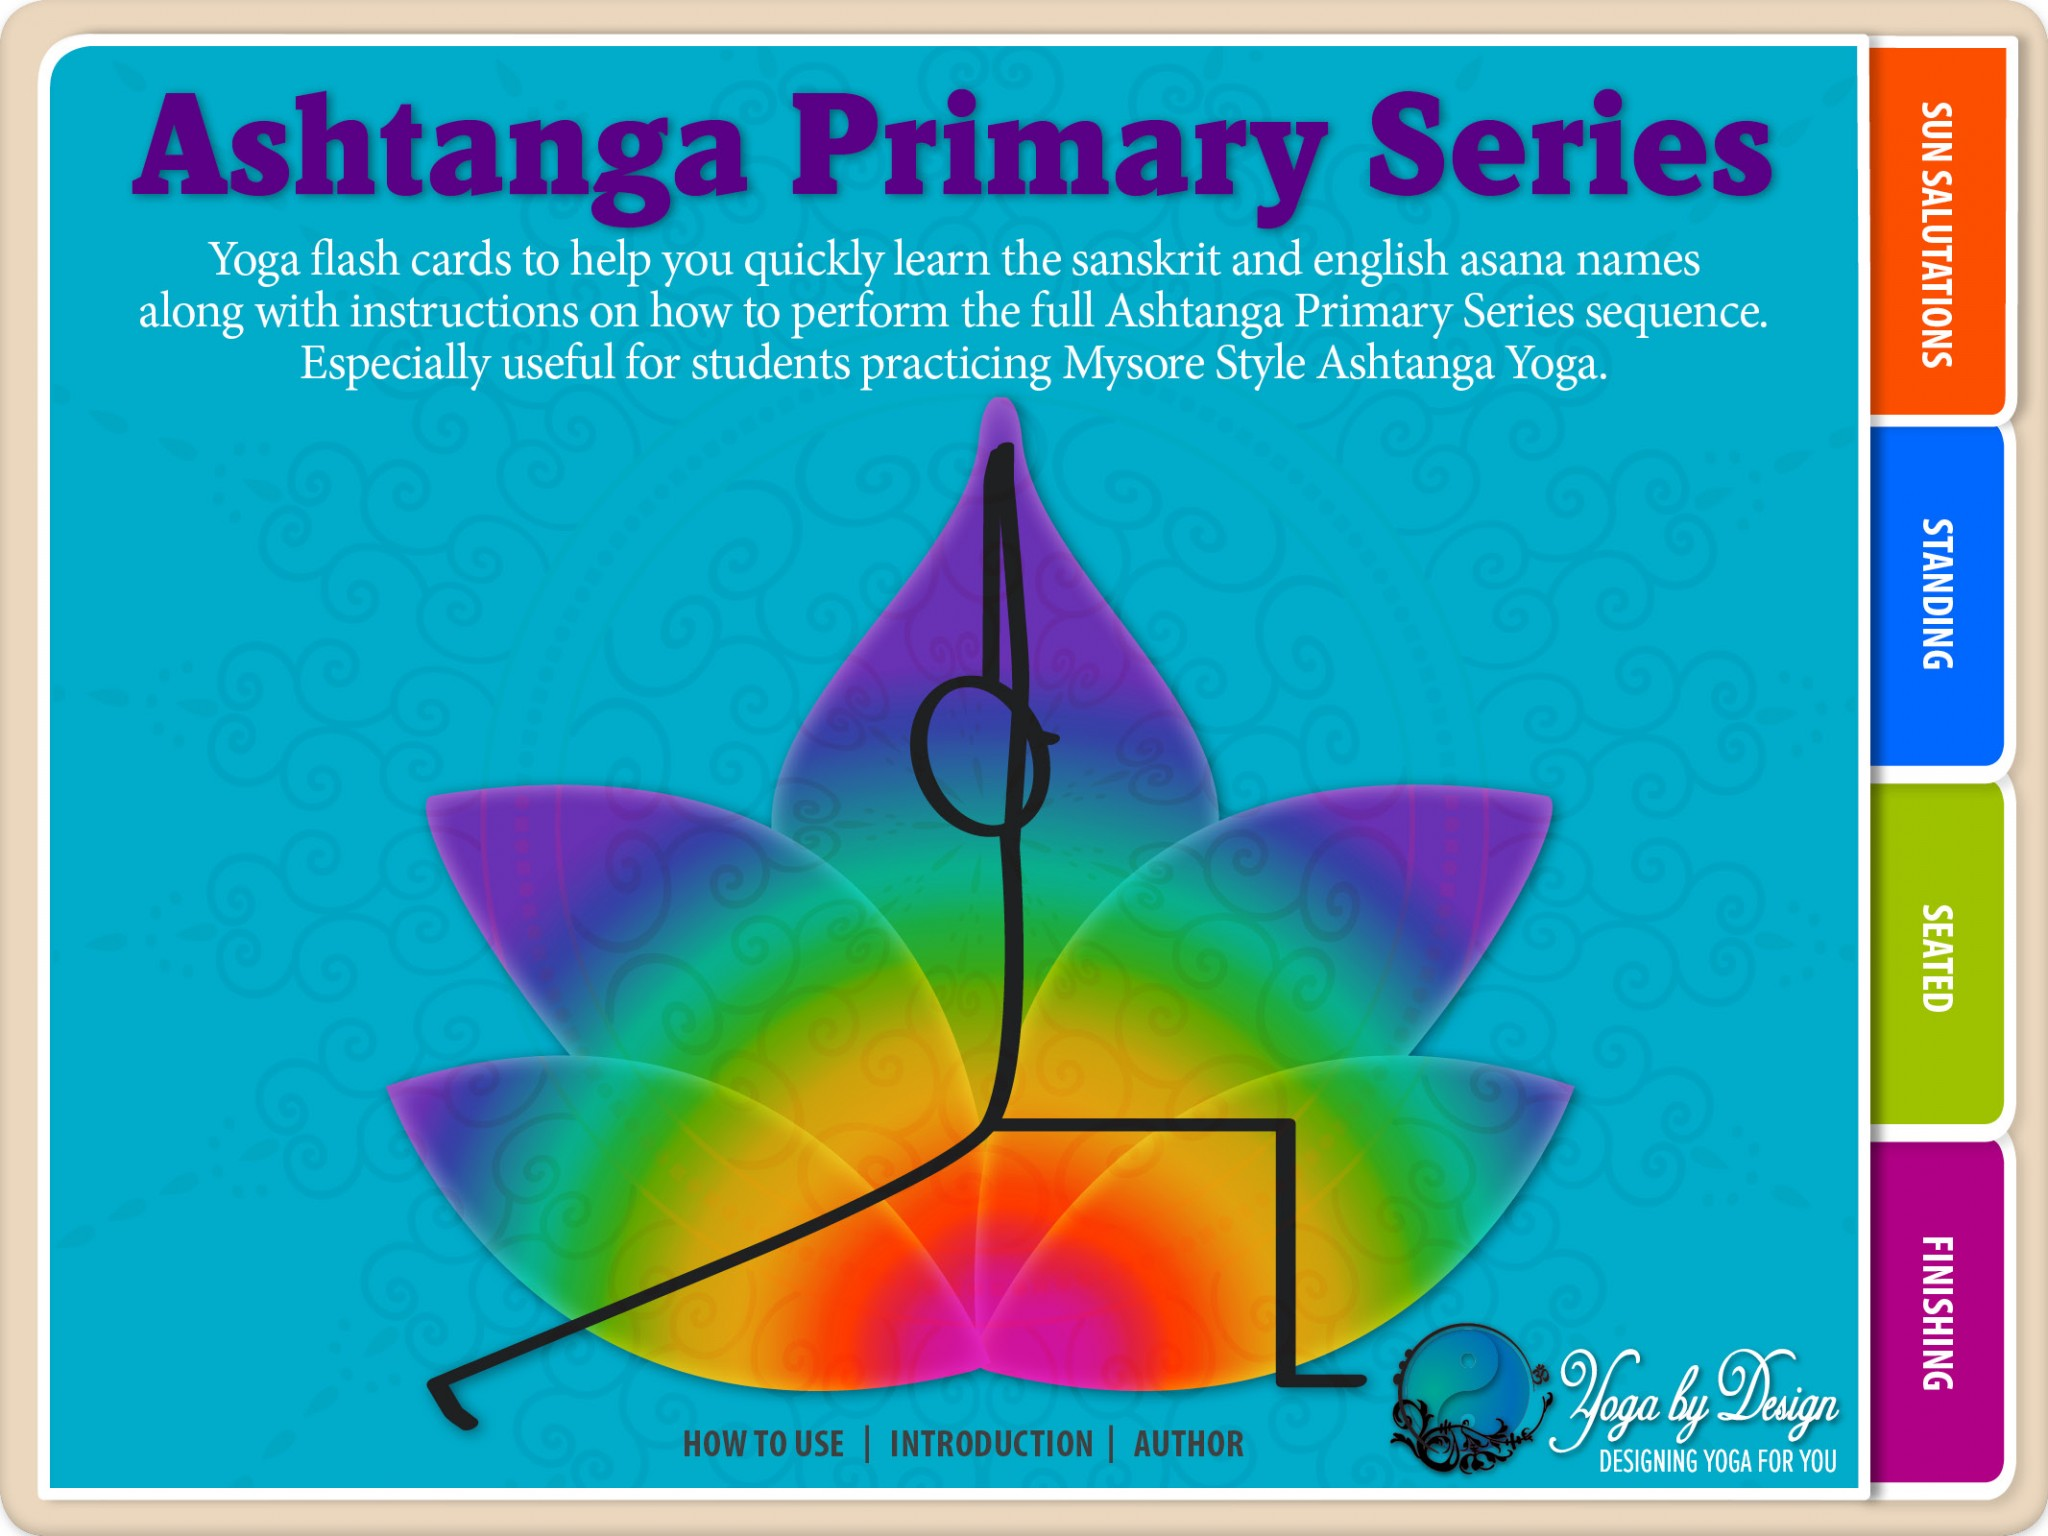 Ashtanga Primary Series Yoga Flash Cards Yoga Book Cover Image